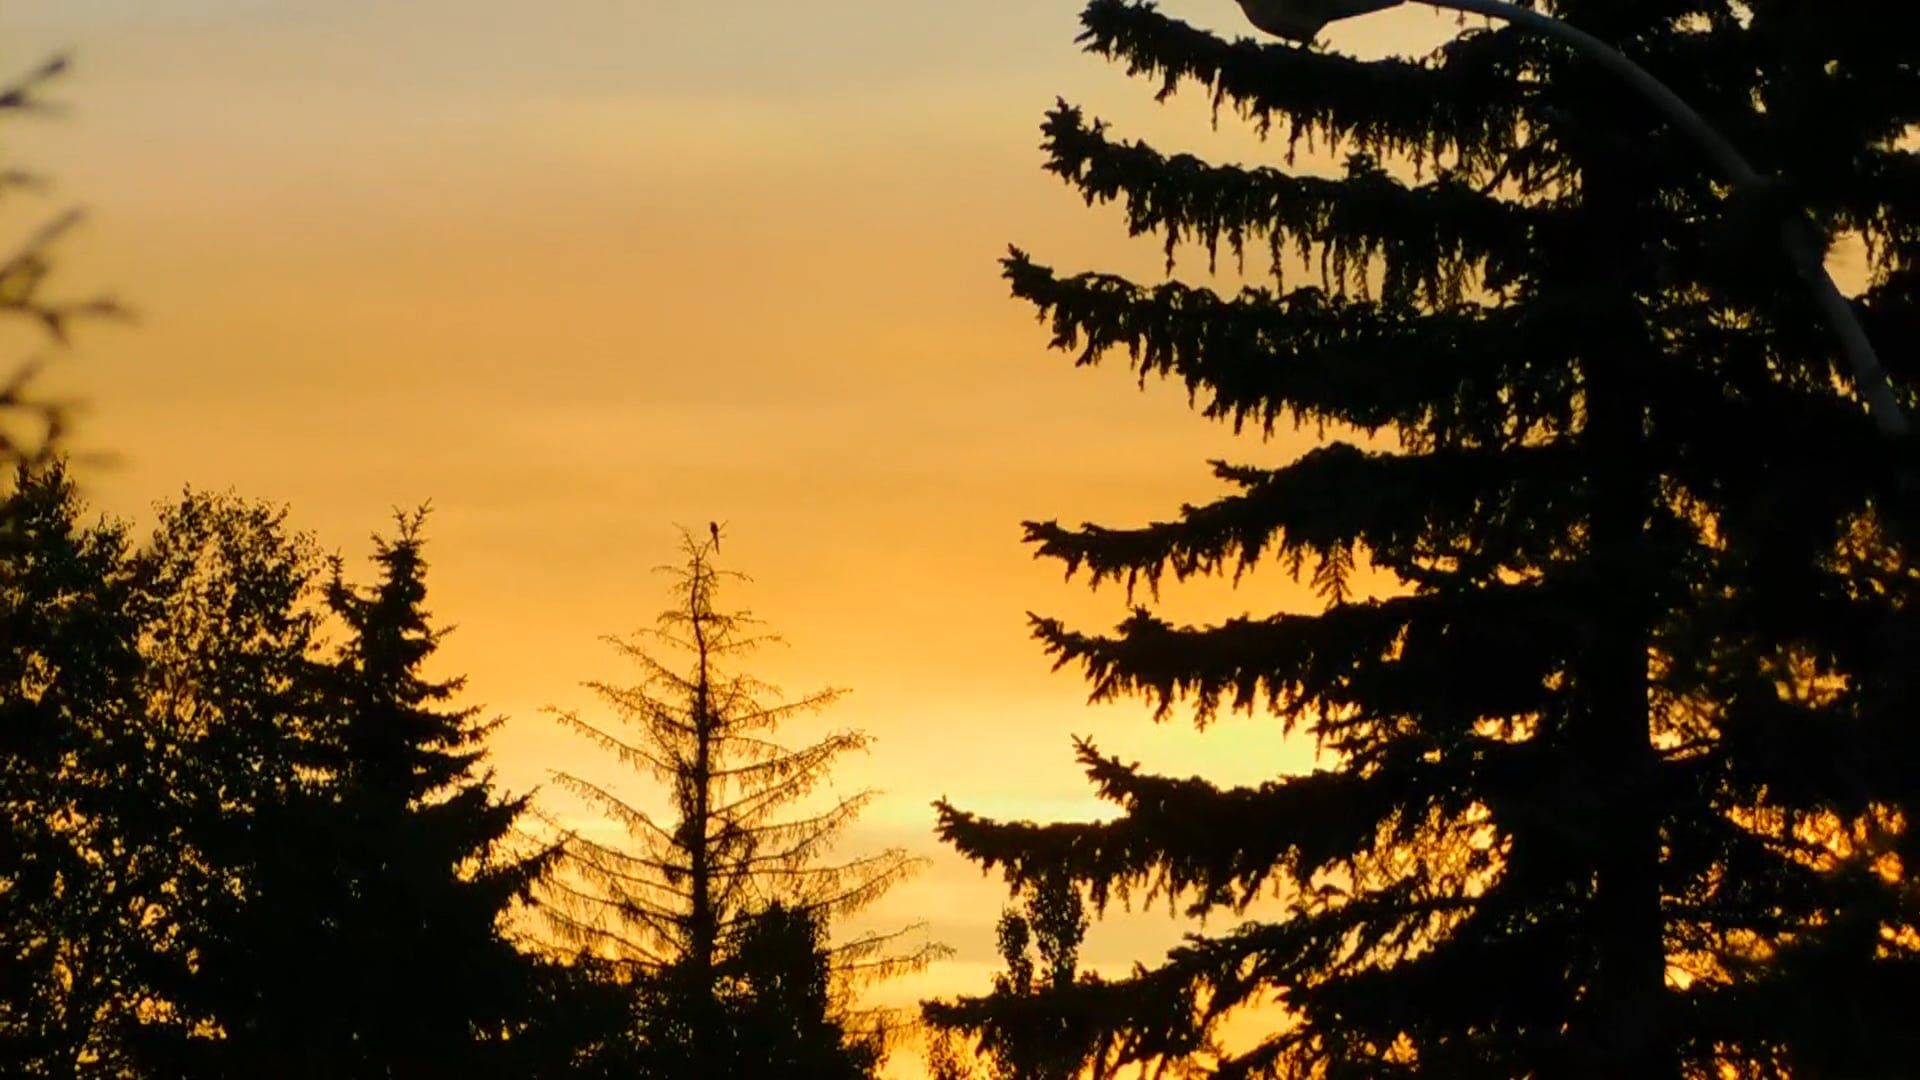 Golden Hour And Silhouette Of Trees